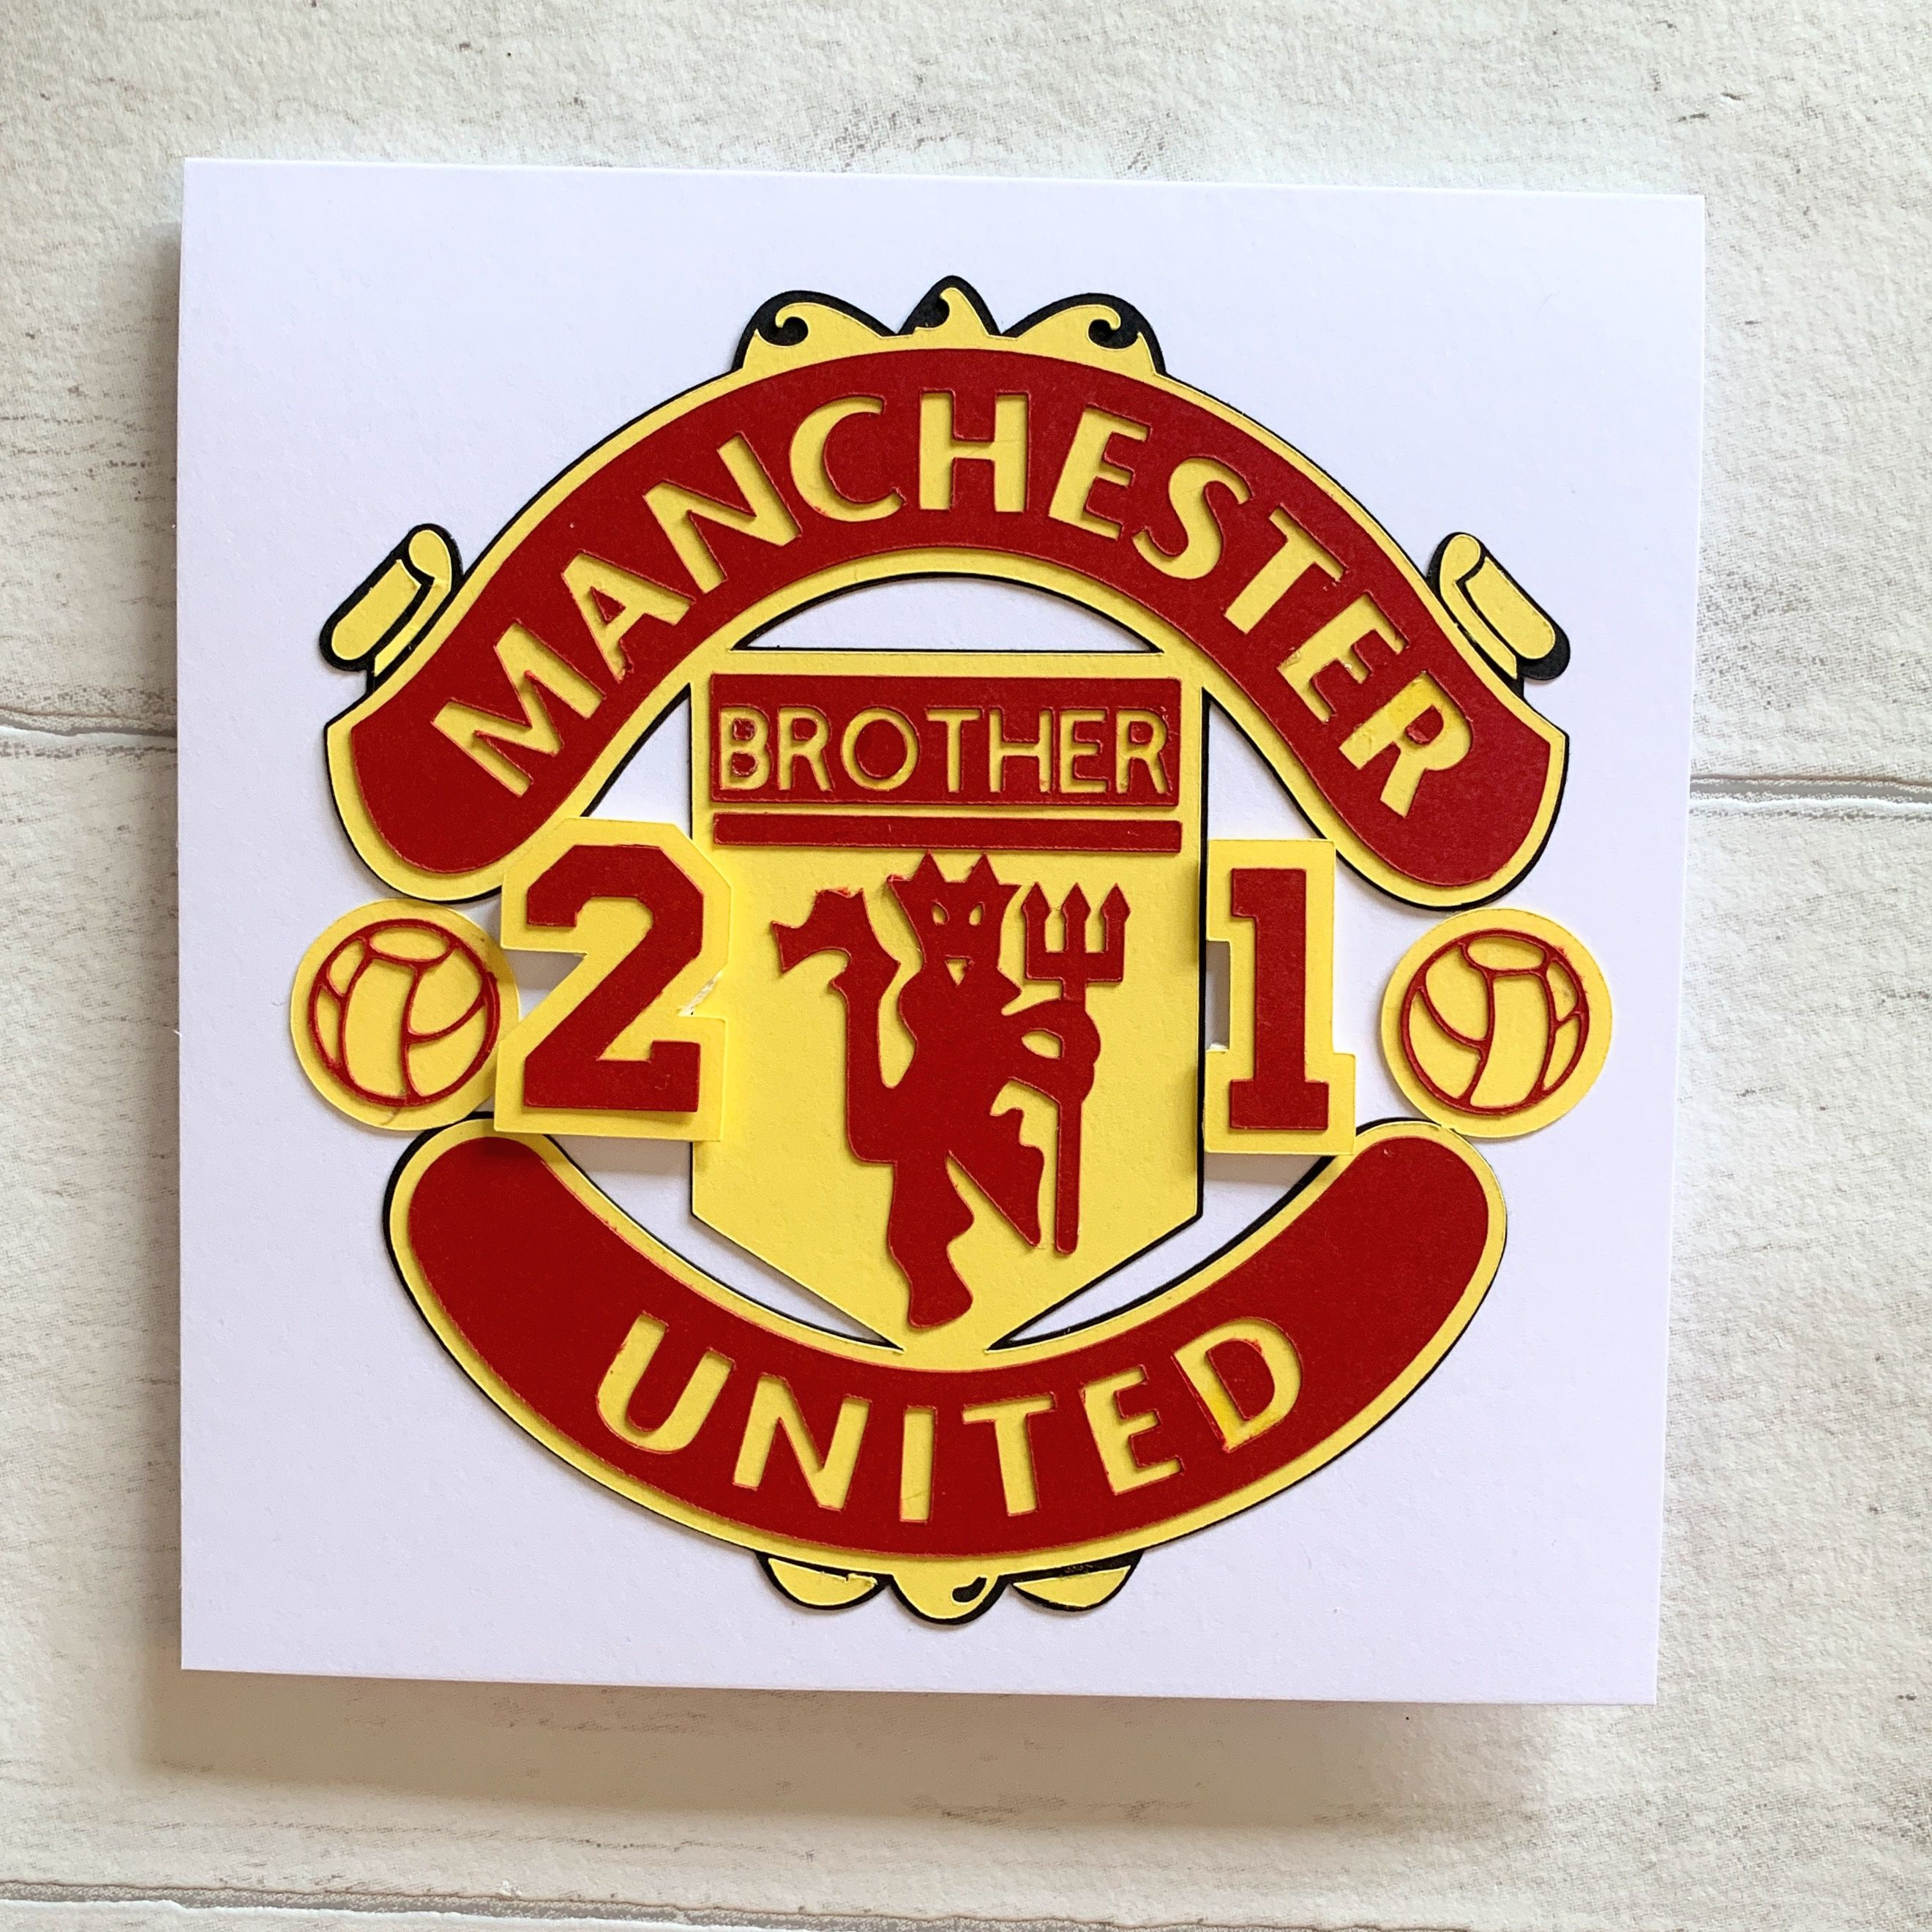 Man Utd In 2020 Football Cake Toppers Christening Cake Topper Birthday Cake Toppers